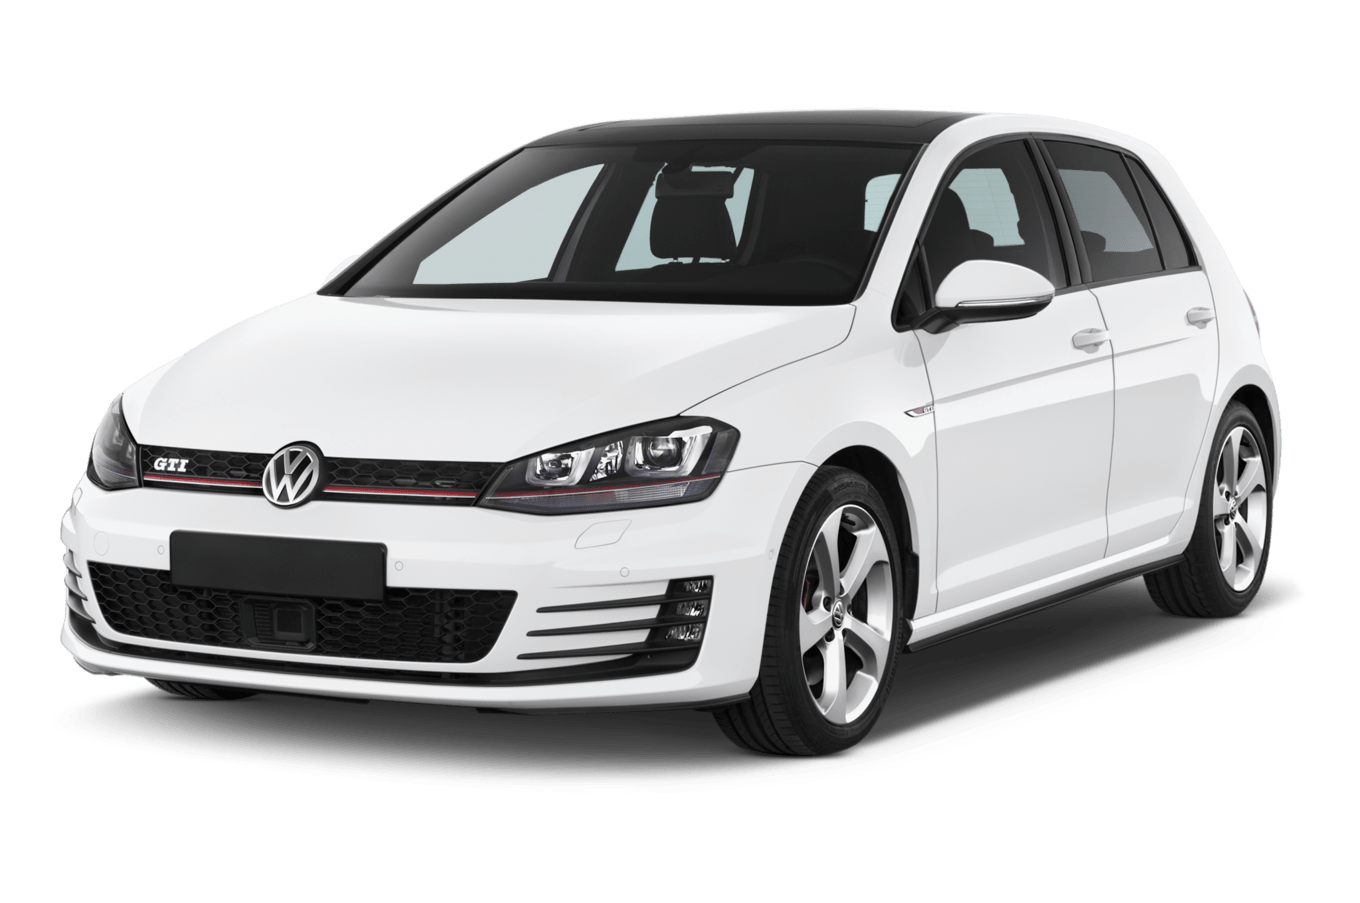 small resolution of 2014 vw gti engine parts diagram wiring diagram sheet 2015 volkswagen gti reviews research gti prices